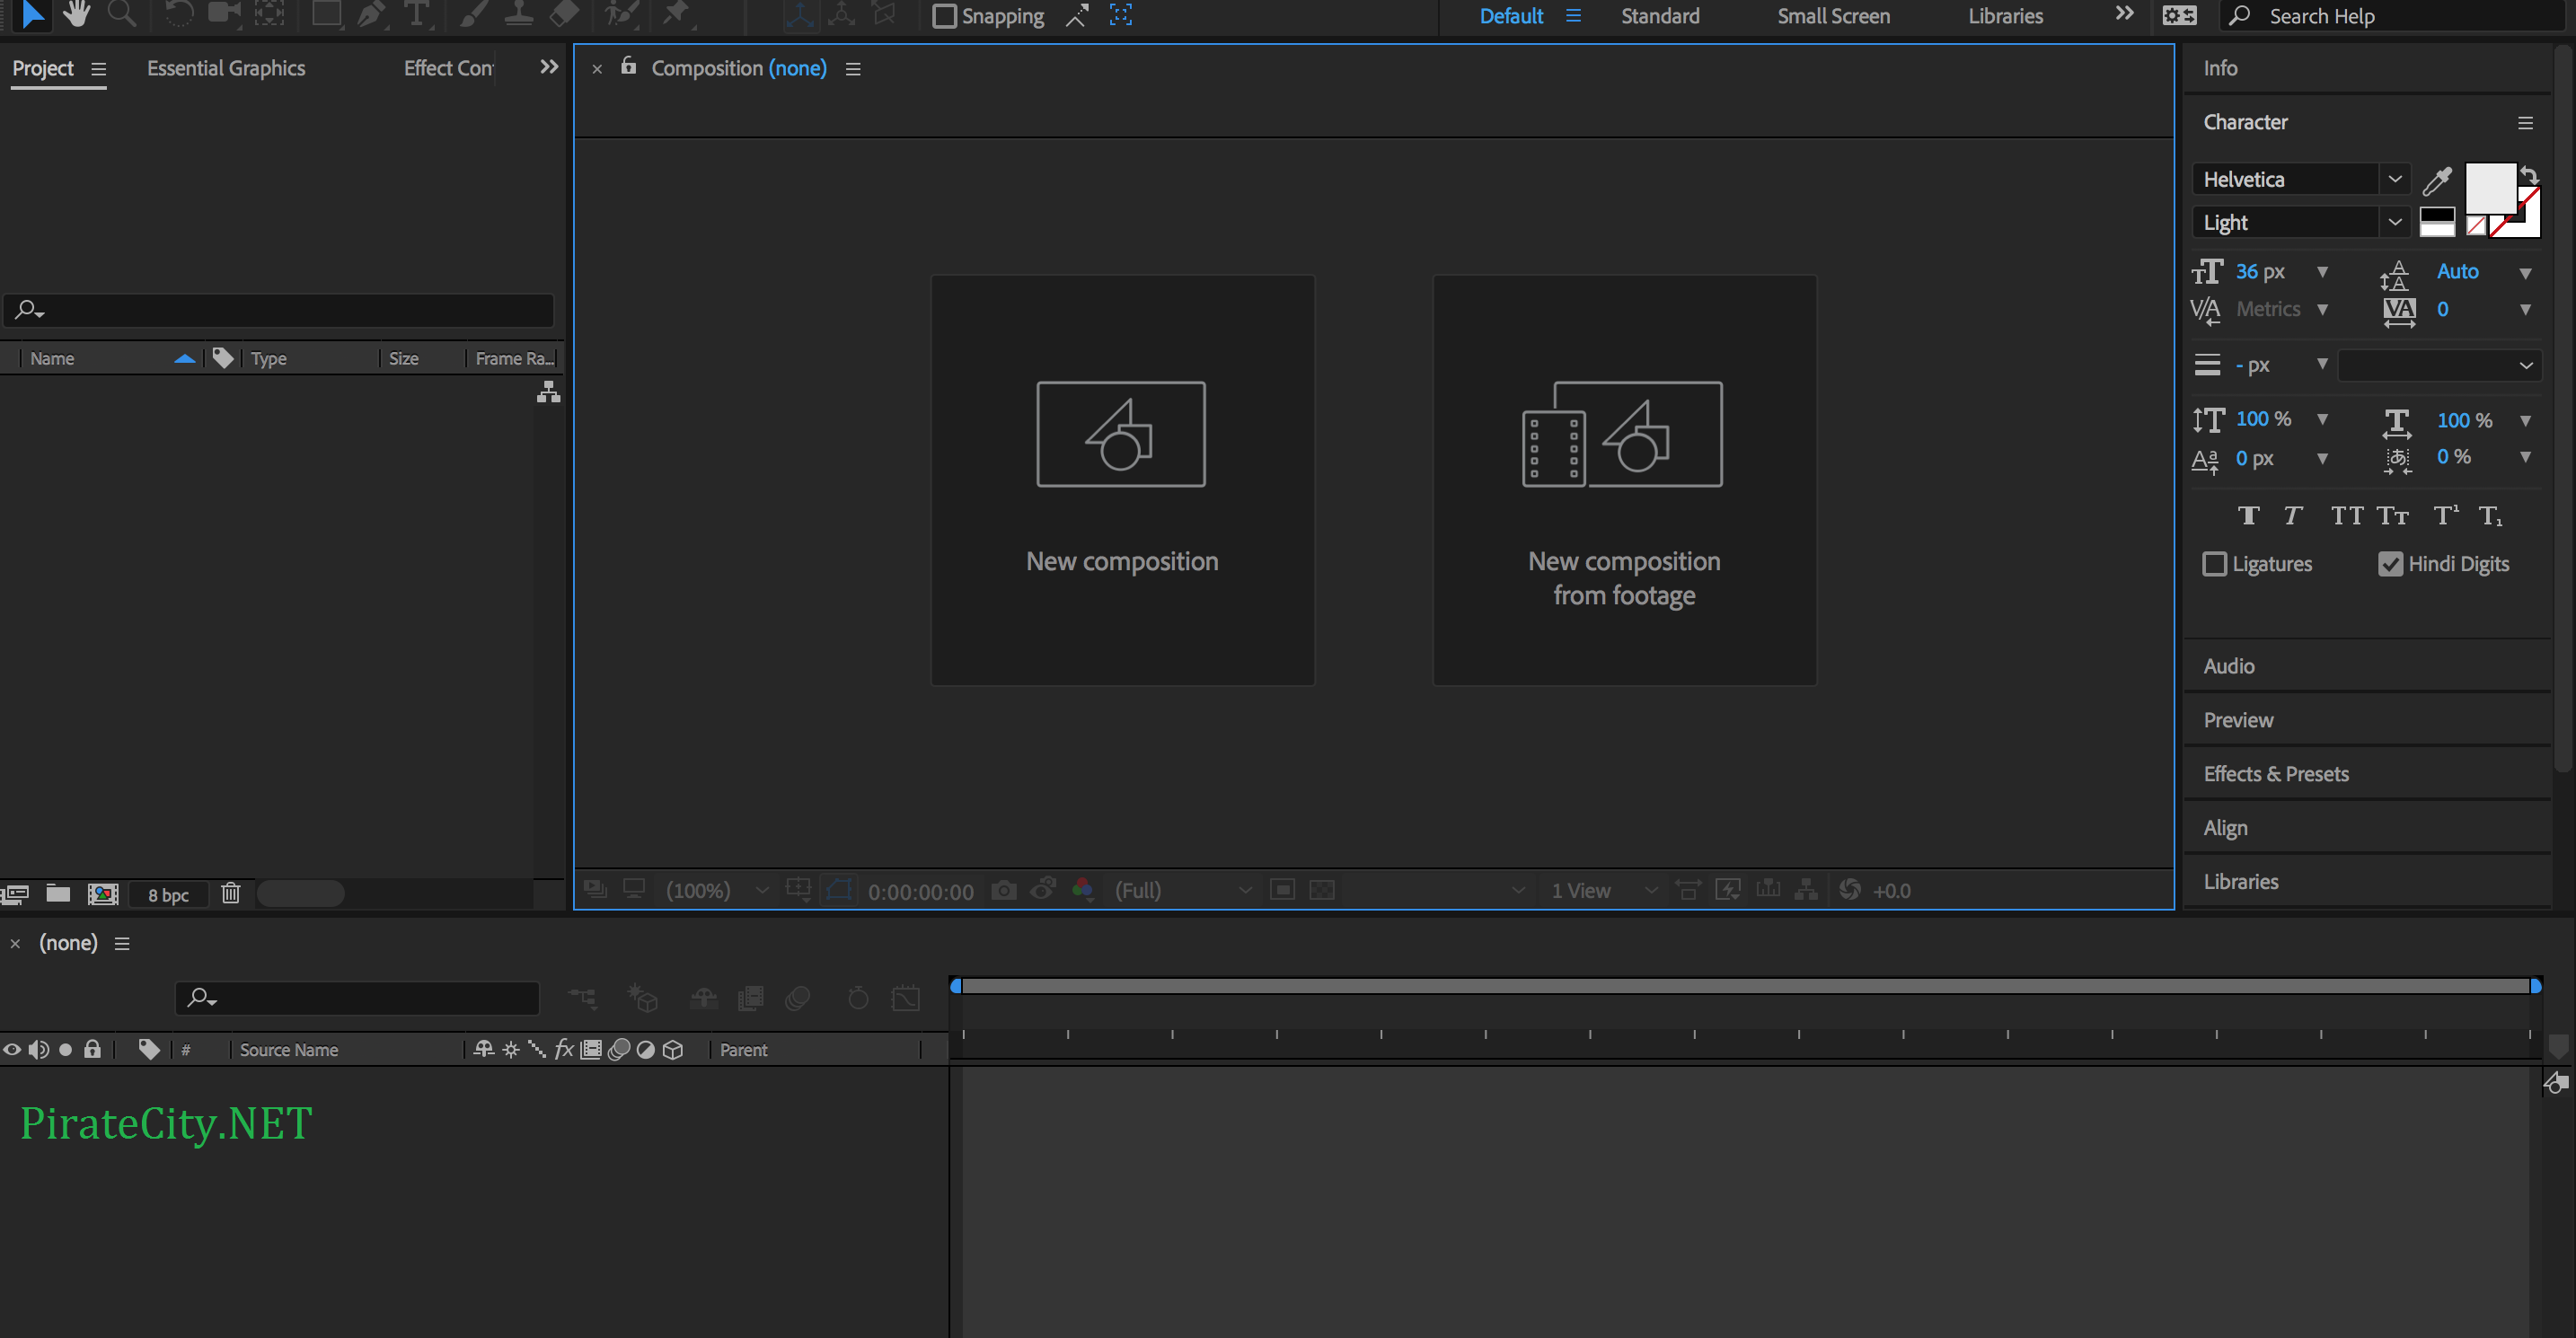 Adobe After Effects CC 2018 torrent